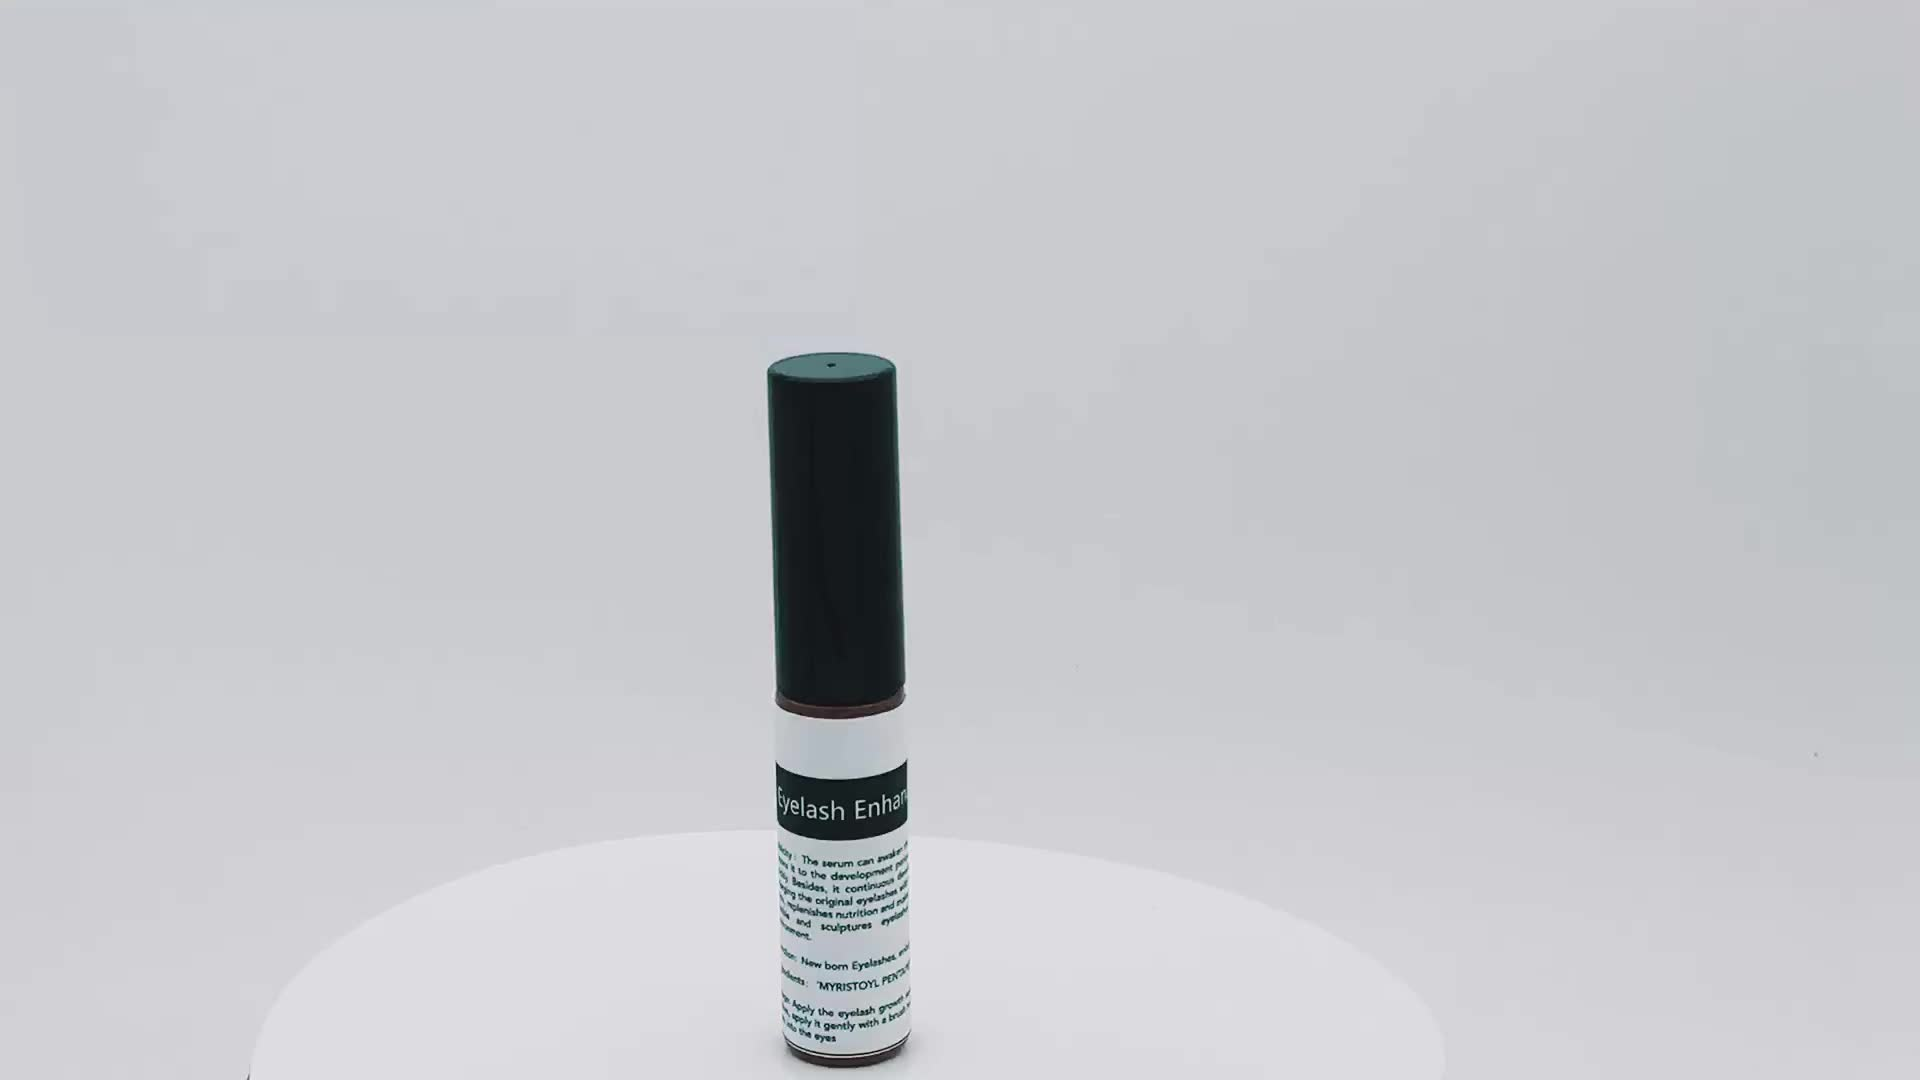 In Stock Natural Eyebrow Eye Lashes Growth Enhancing Eyelash Serum , Eyelash Growth Serum